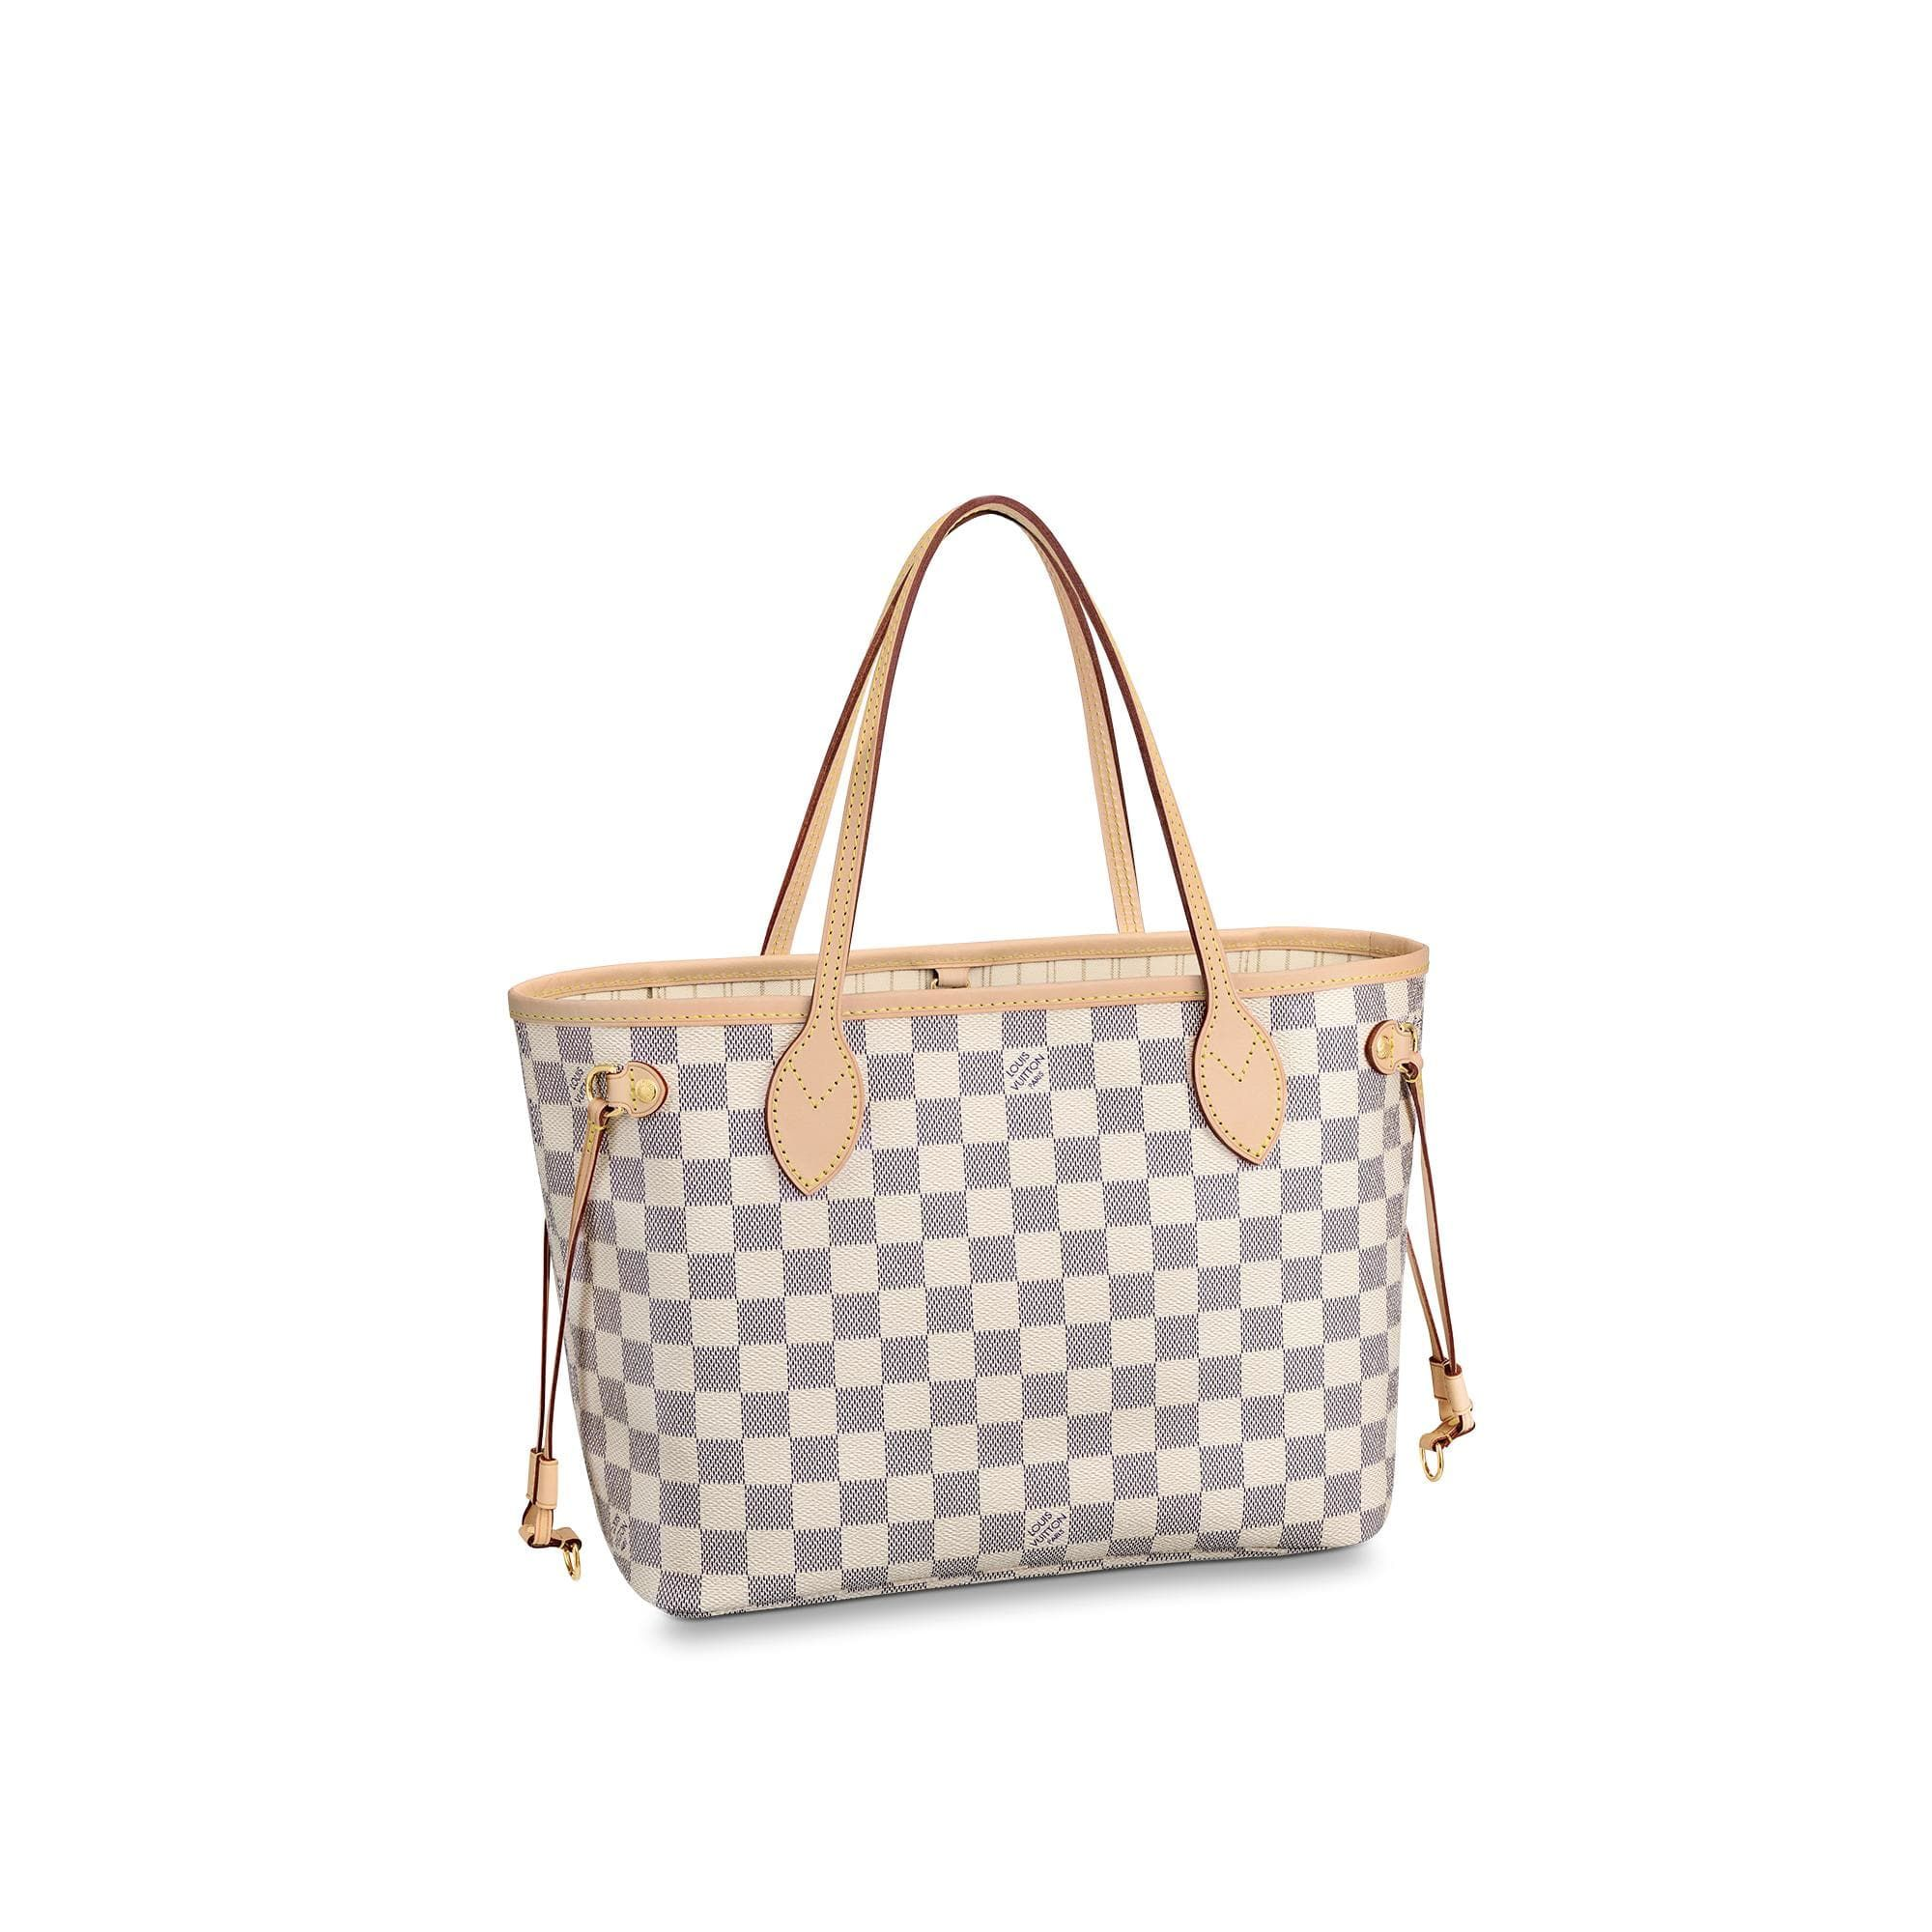 Neverfull GM Damier Azur Canvas - HANDBAGS  1fbcc786e8bb2